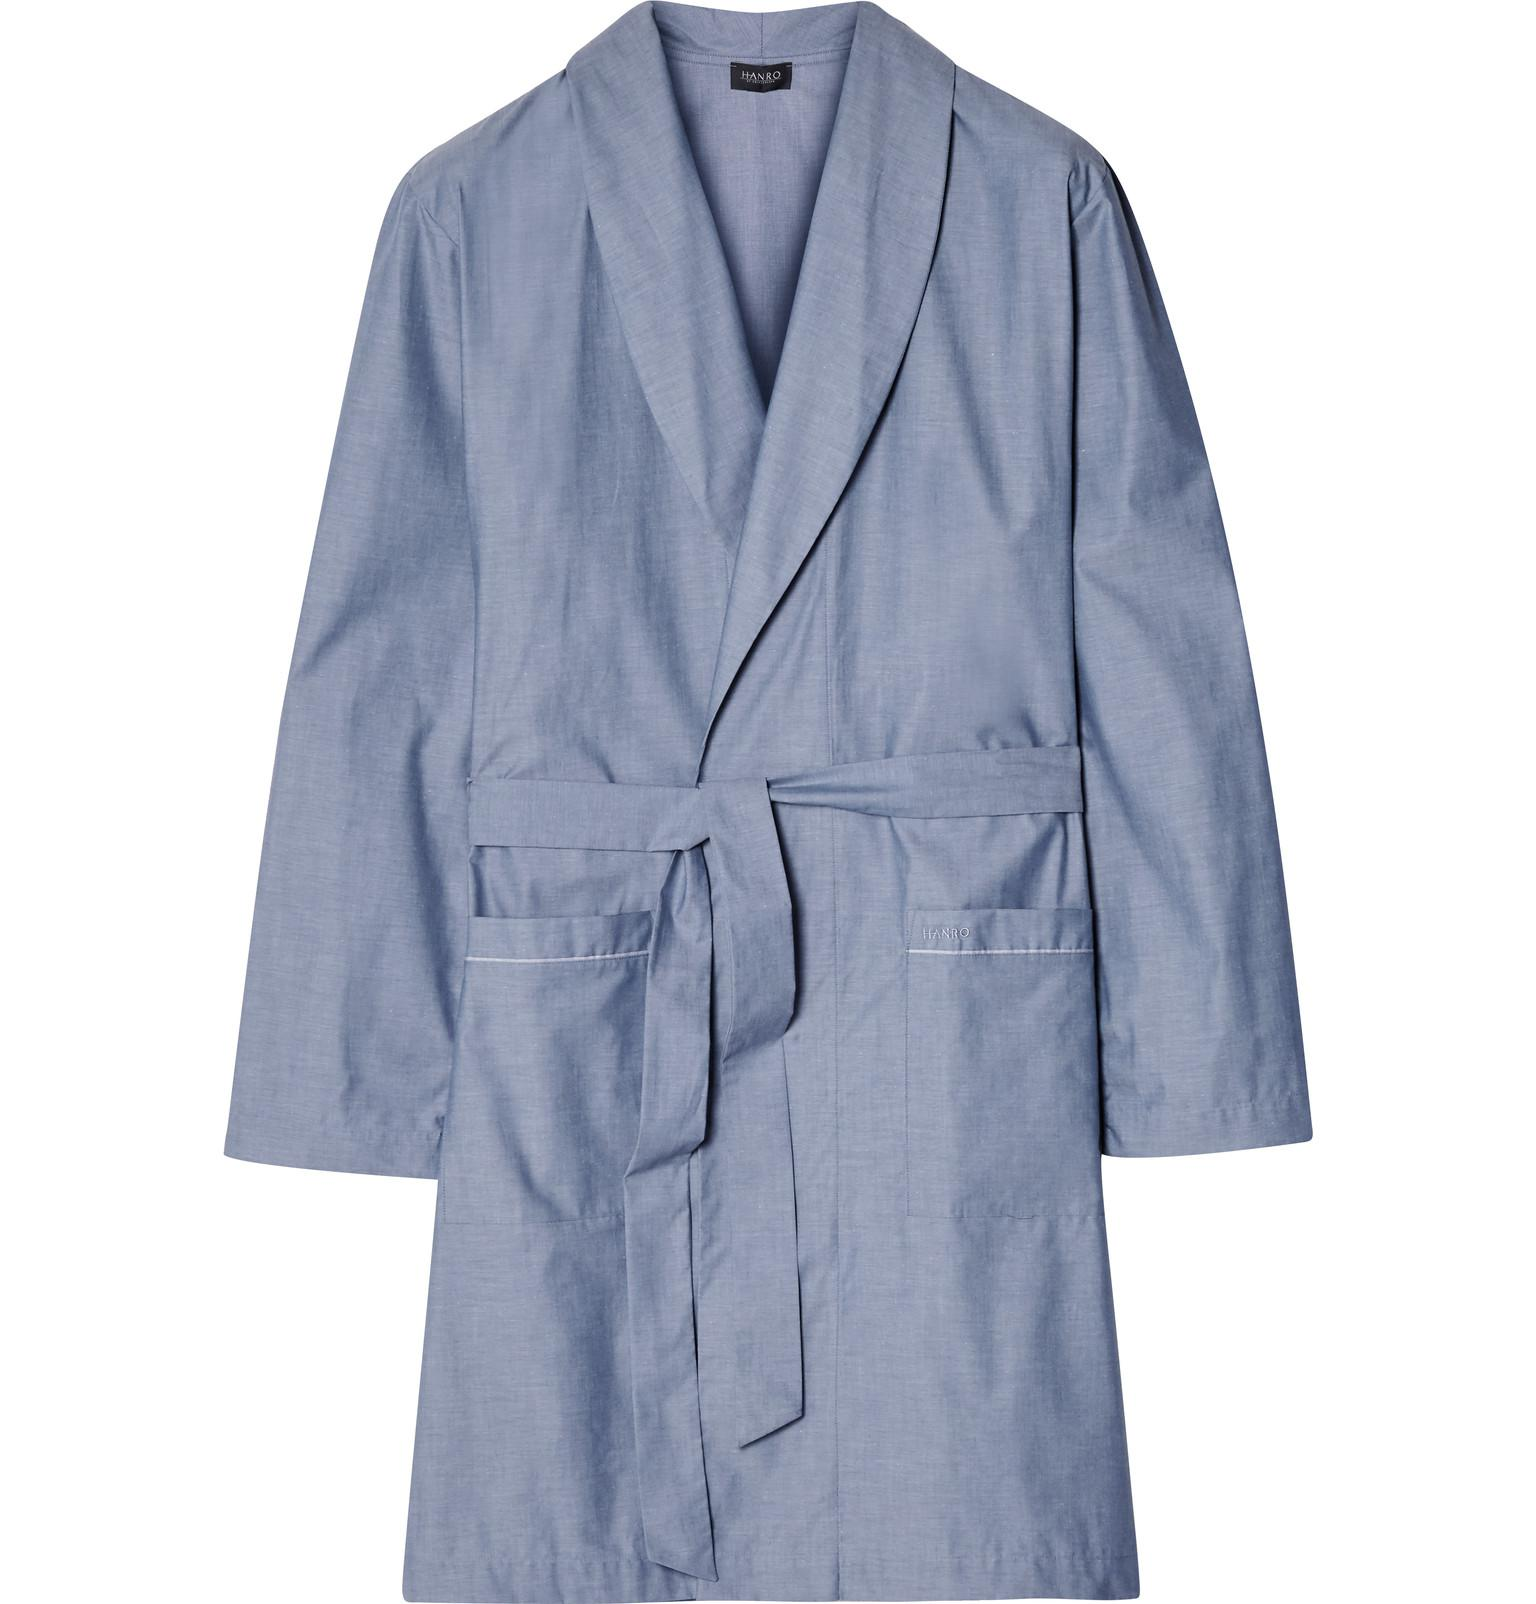 7c69ad55f4 Lyst - Hanro Javier Cotton Robe in Blue for Men